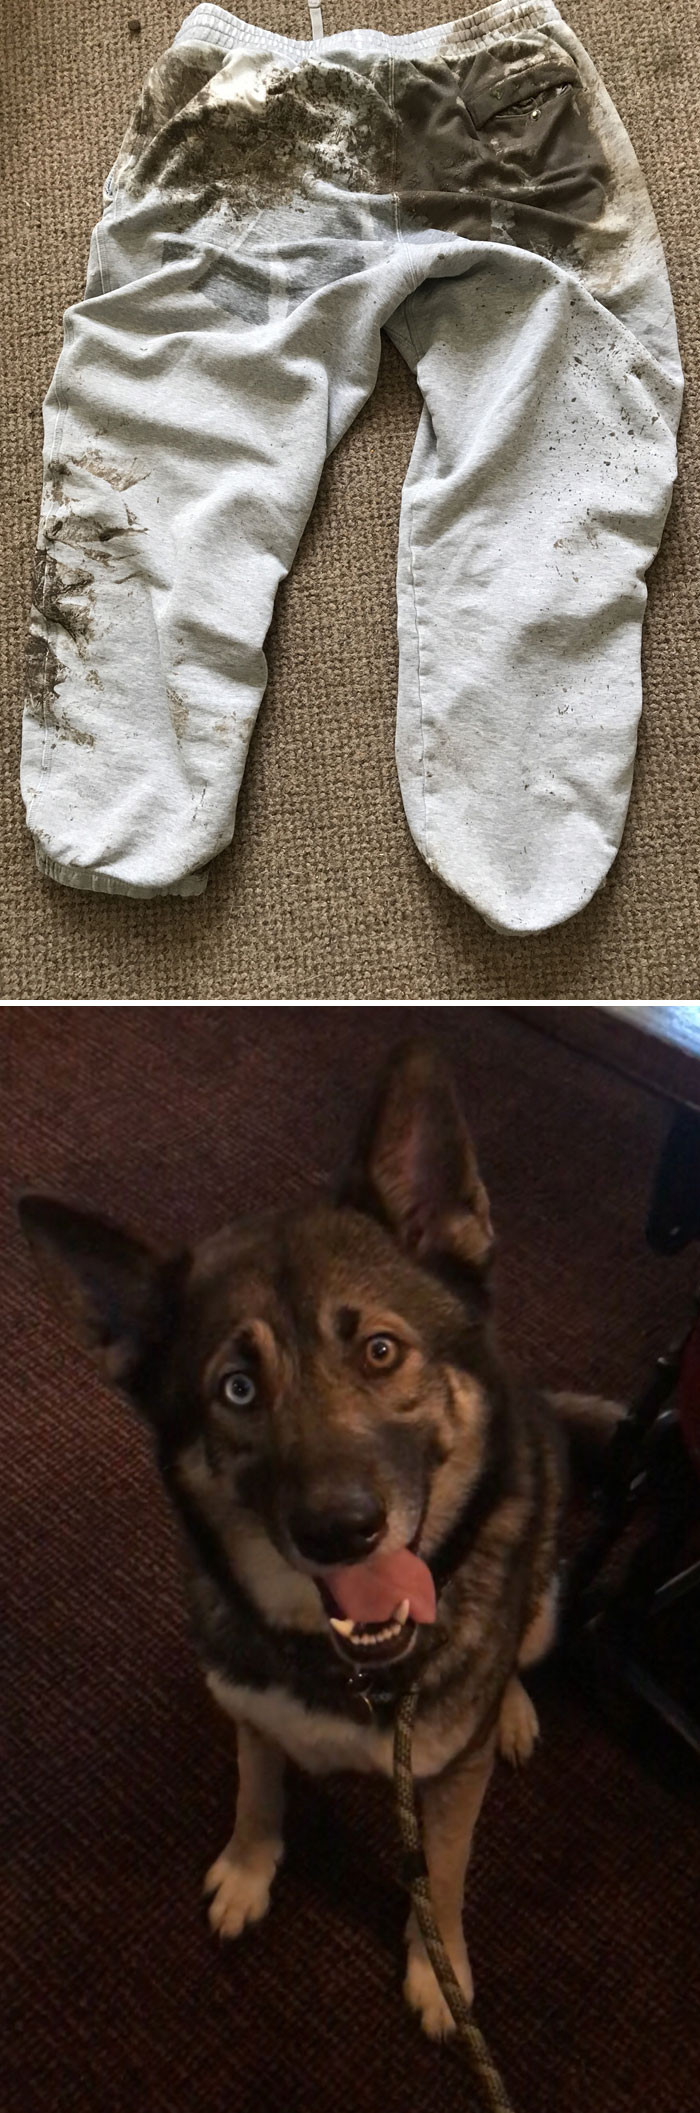 His dog saw a squirrel and dragged him through the mud on his butt